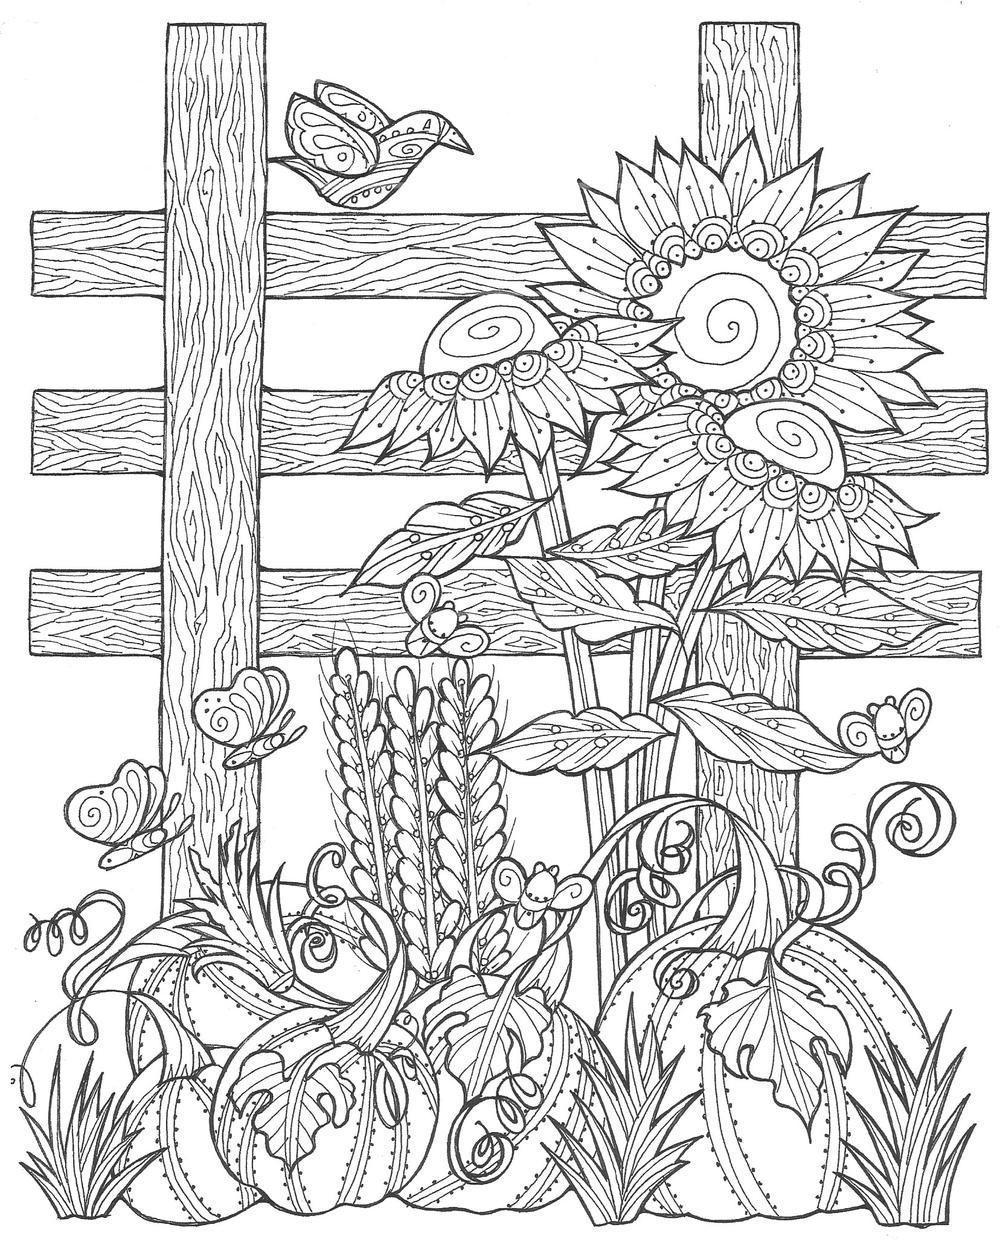 Sunflower Pumpkin Patch Coloring Page | Free Adult Coloring